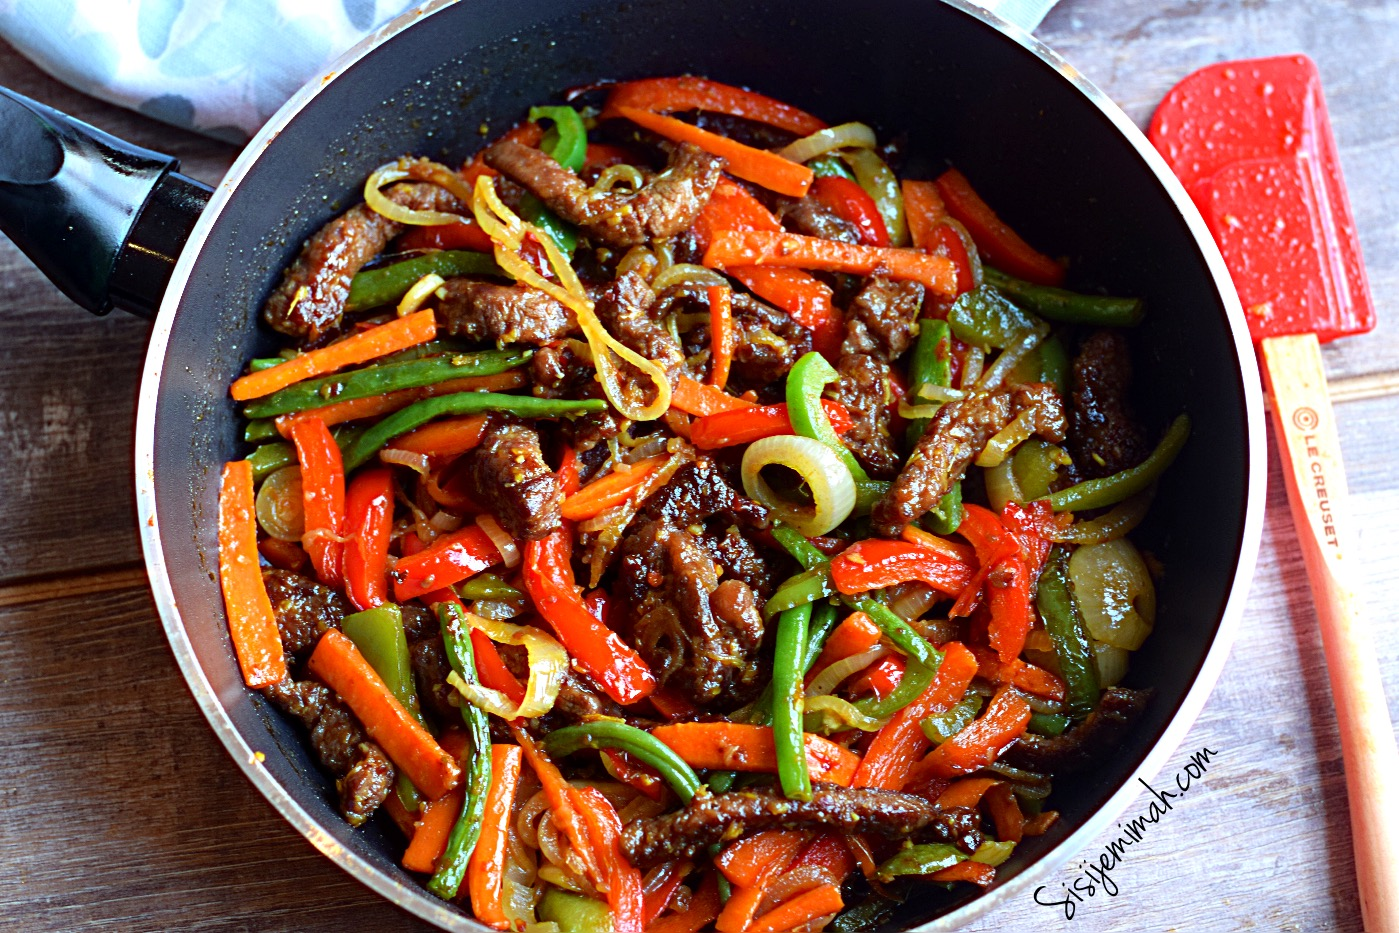 Chinese Beef Stir Fry With Crunchy Vegetables Sisi Jemimah